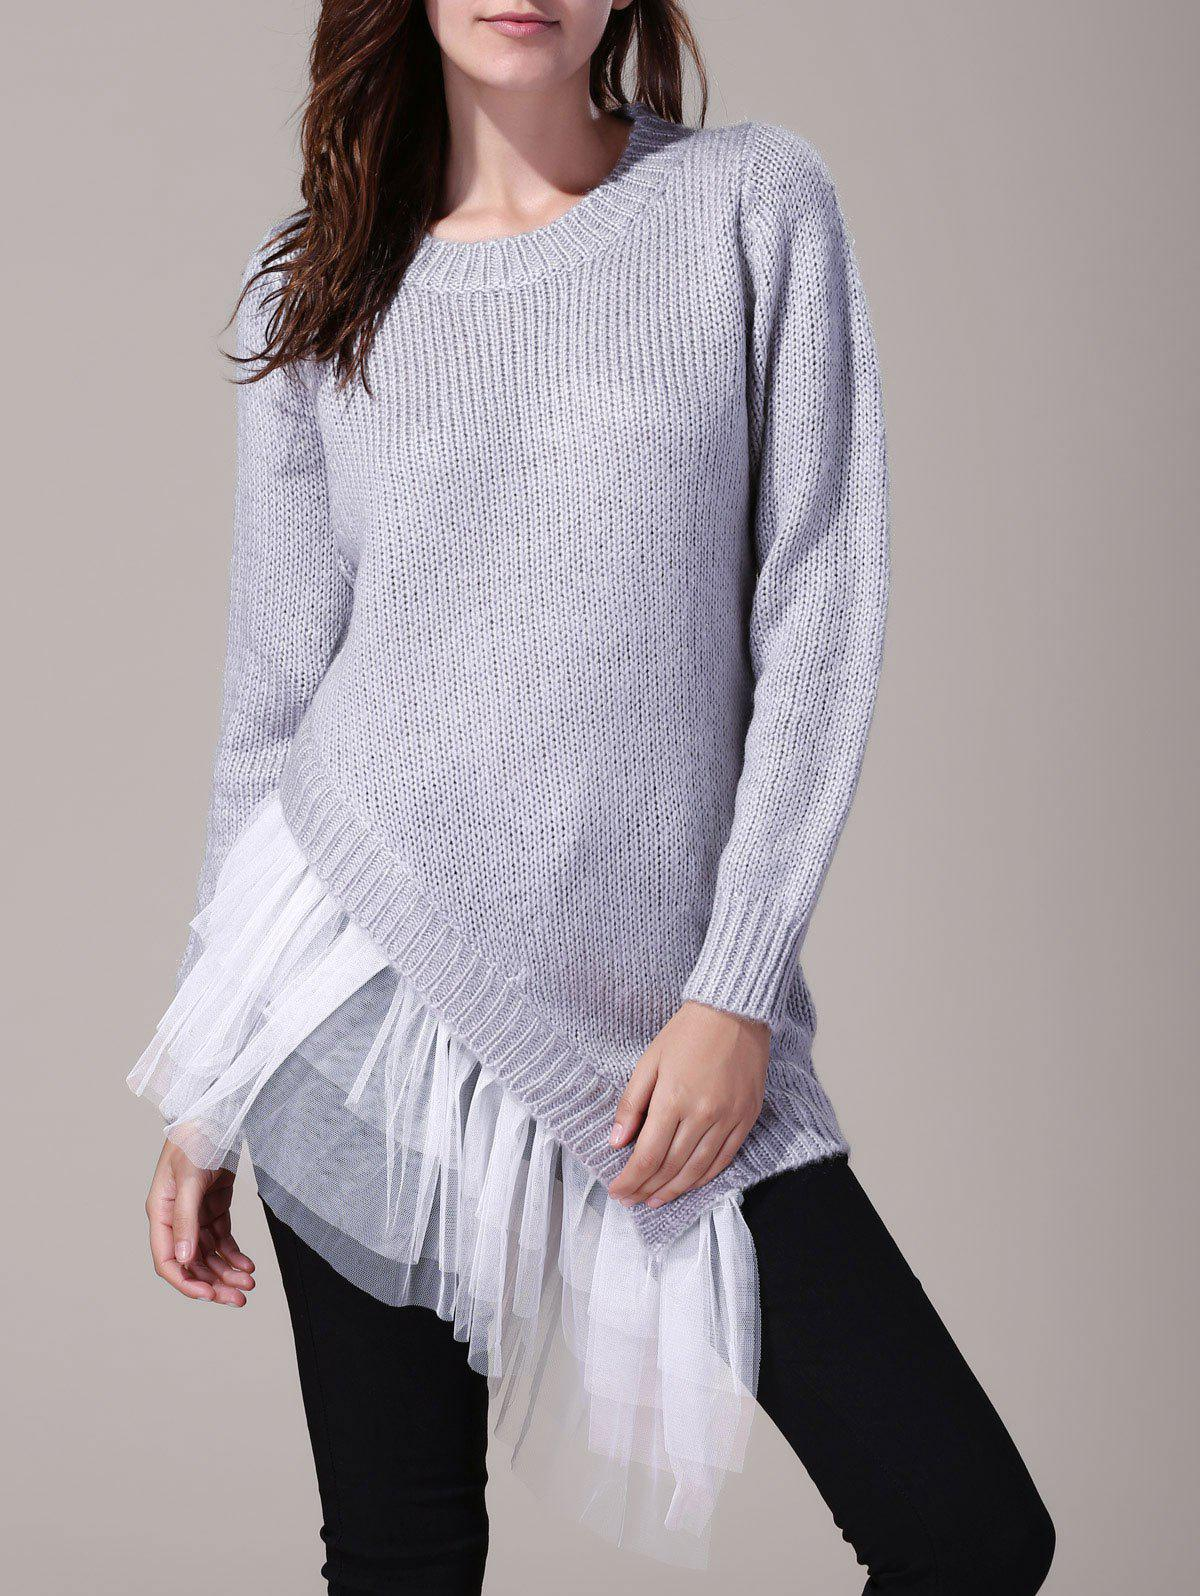 Round Neck Long Sleeve Lace Splicing Asymmetrical Sweater For Women - GRAY ONE SIZE(FIT SIZE XS TO M)